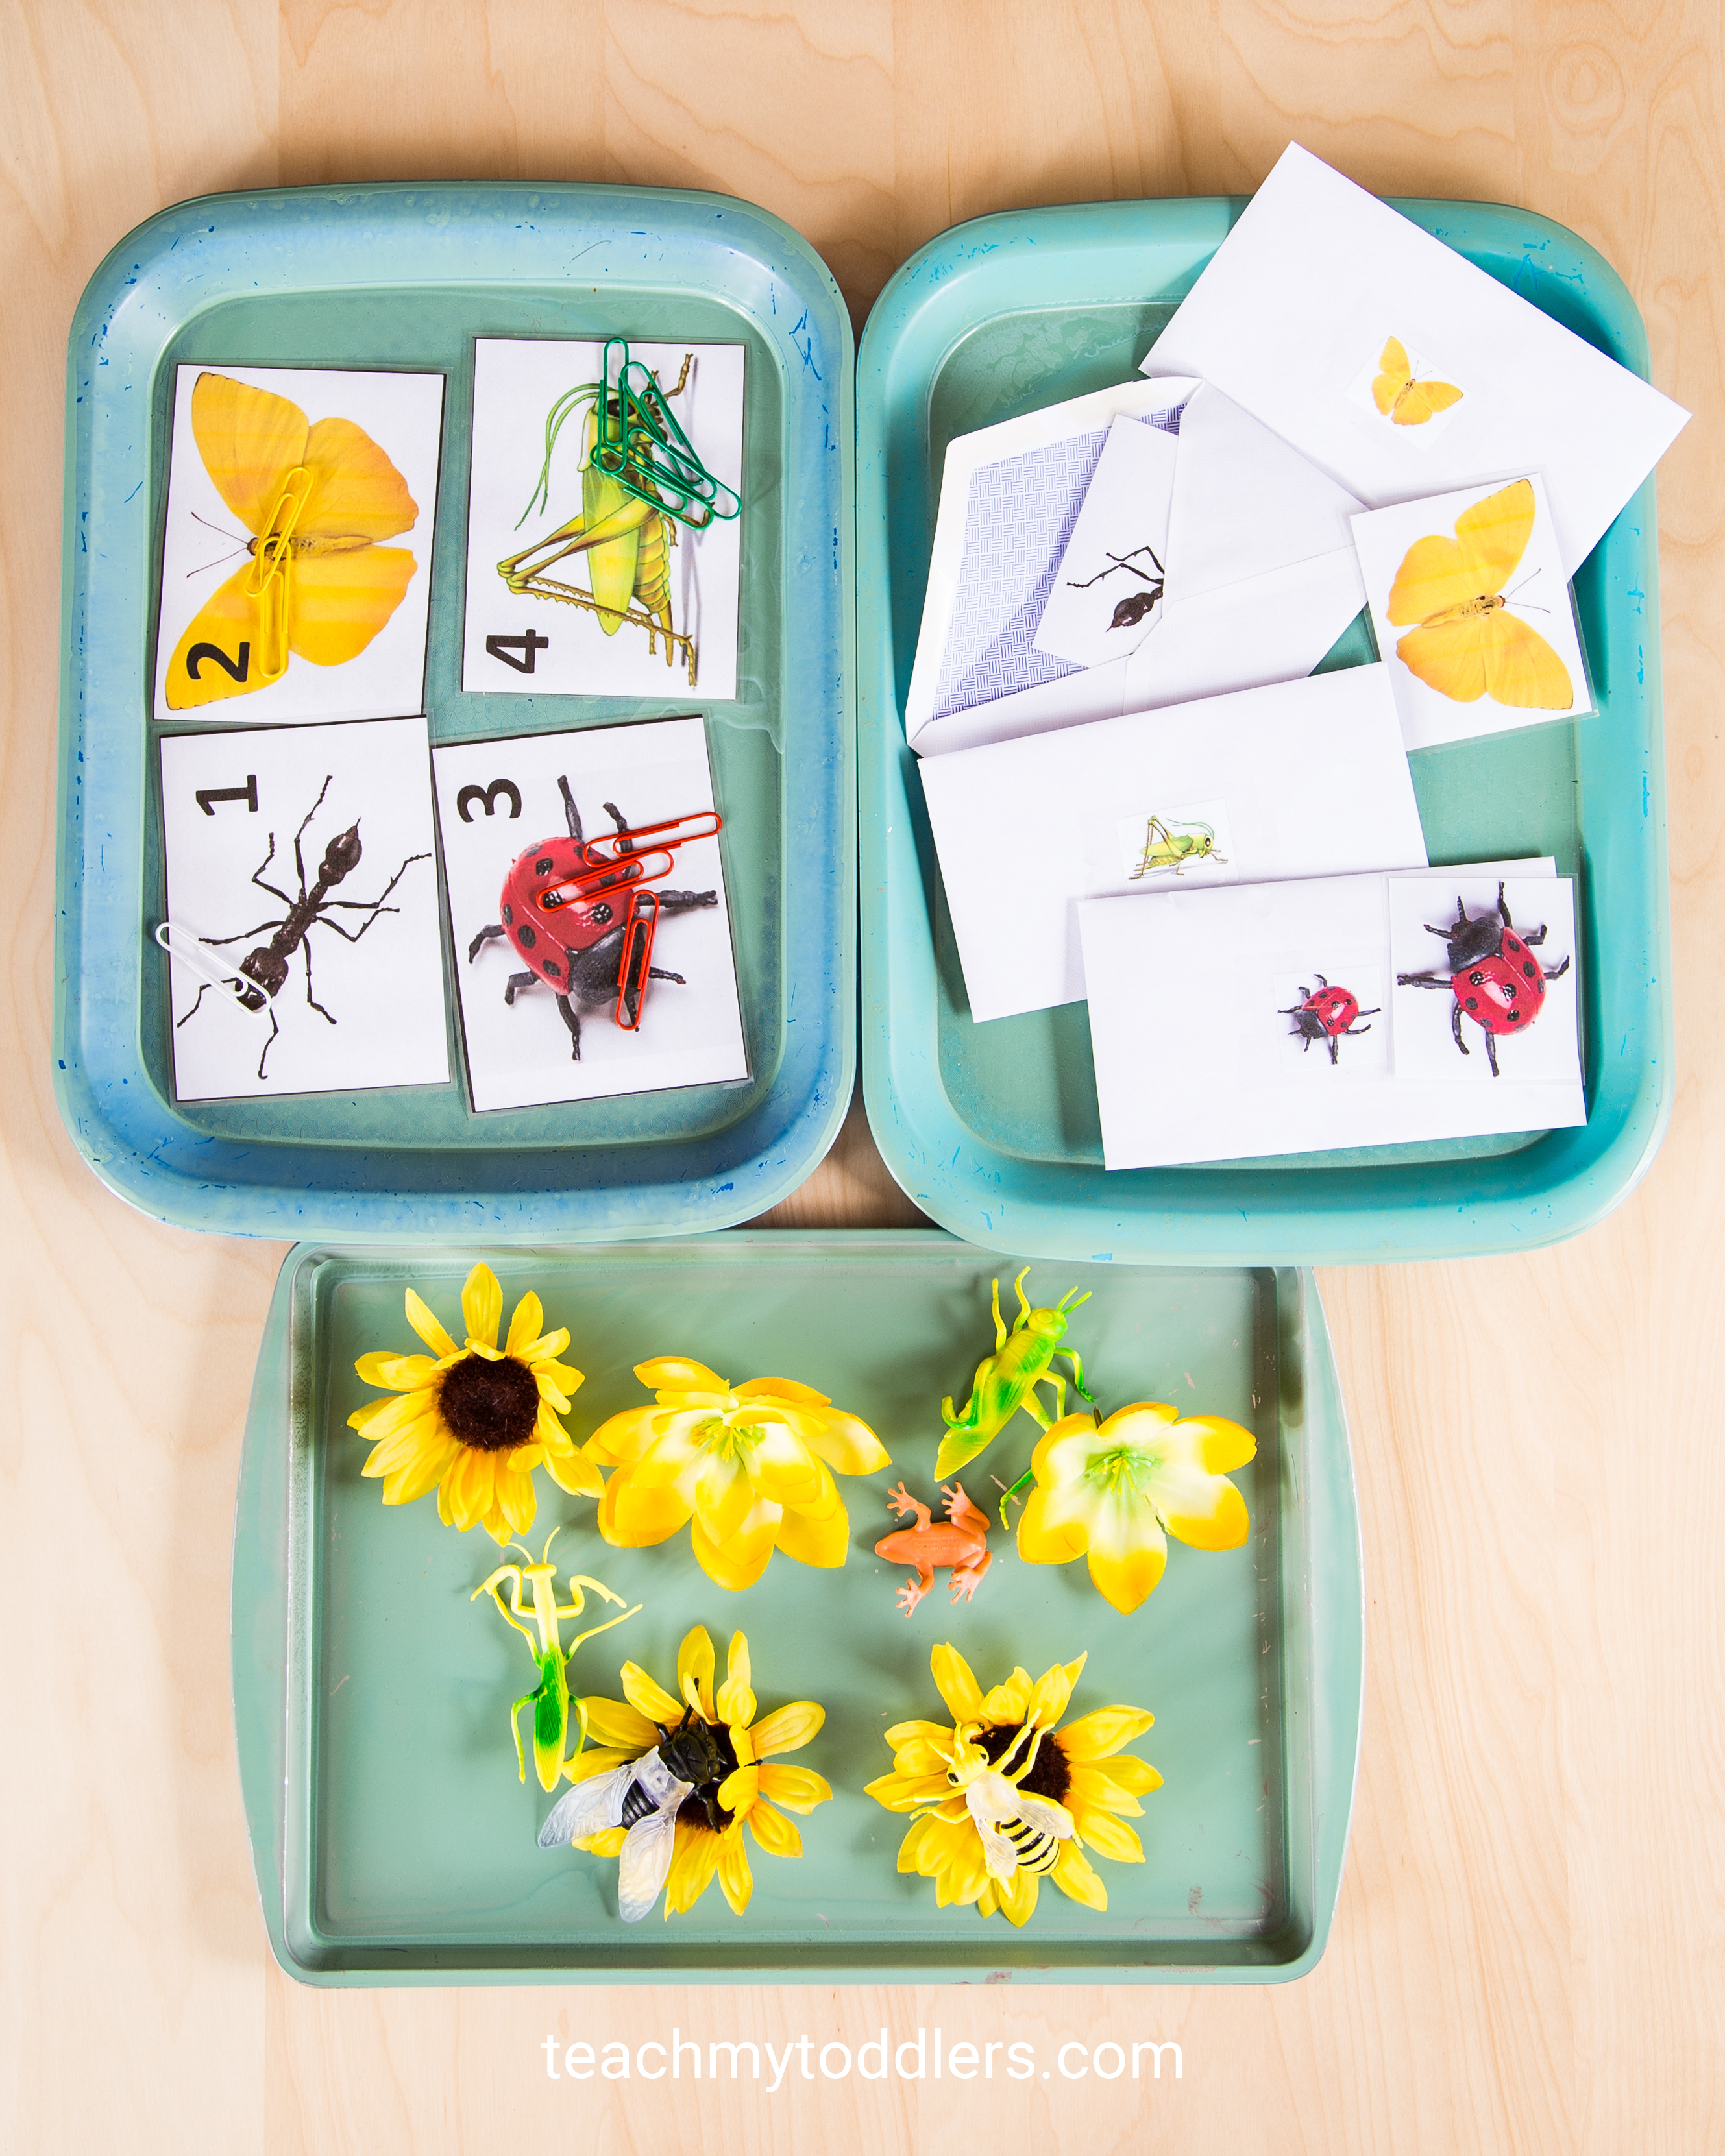 Discover how to use these bug trays to teach your toddlers about bugs